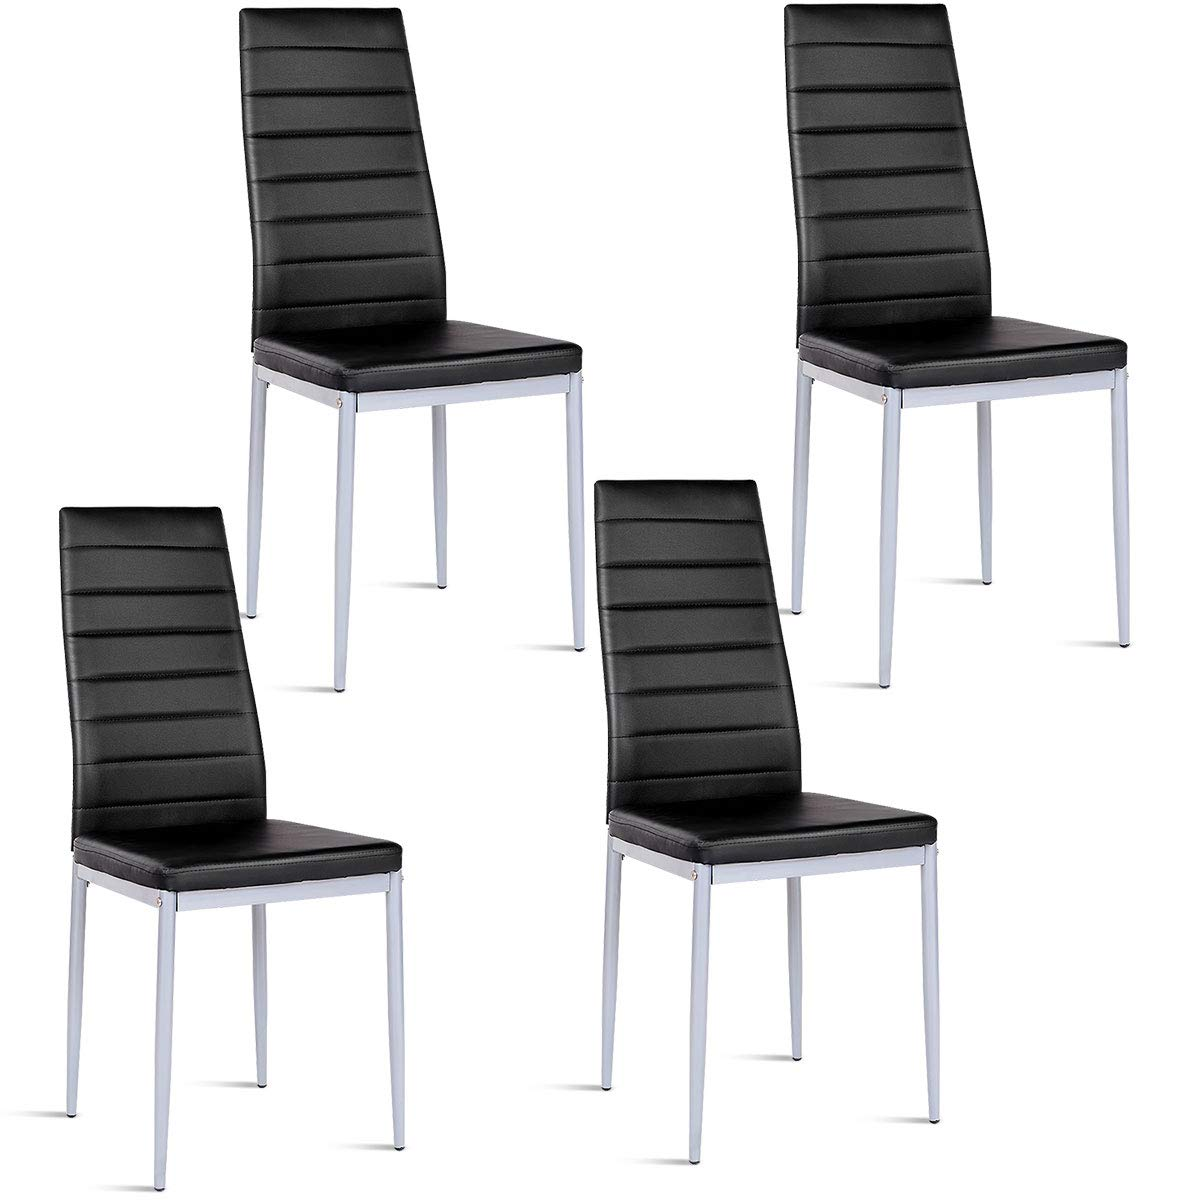 Giantex Set of 4 PU Leather Dining Side Chairs with Padded Seat Foot Cap Protection Stable Frame Heavy Duty Elegant Ergonomically High Back Design for Kitchen Dining Room Home Furniture, Black by Giantex